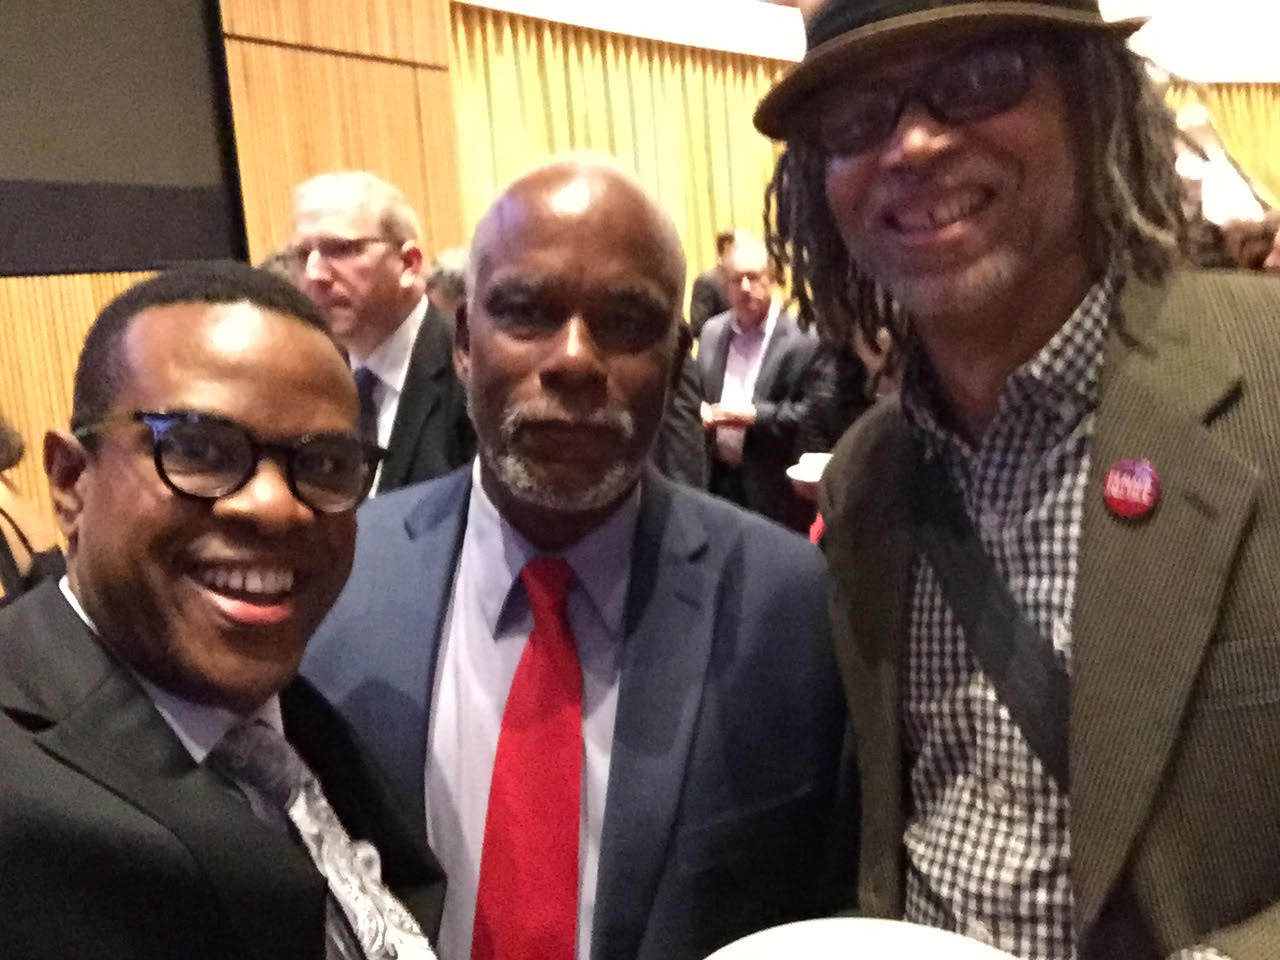 (L-R): Thomas Allen Harris, Stanley Nelson, Lewis Erskine at the 2016 Emmy Awards. They are posing for a selfie. Courtesy of Thomas Allen Harris.